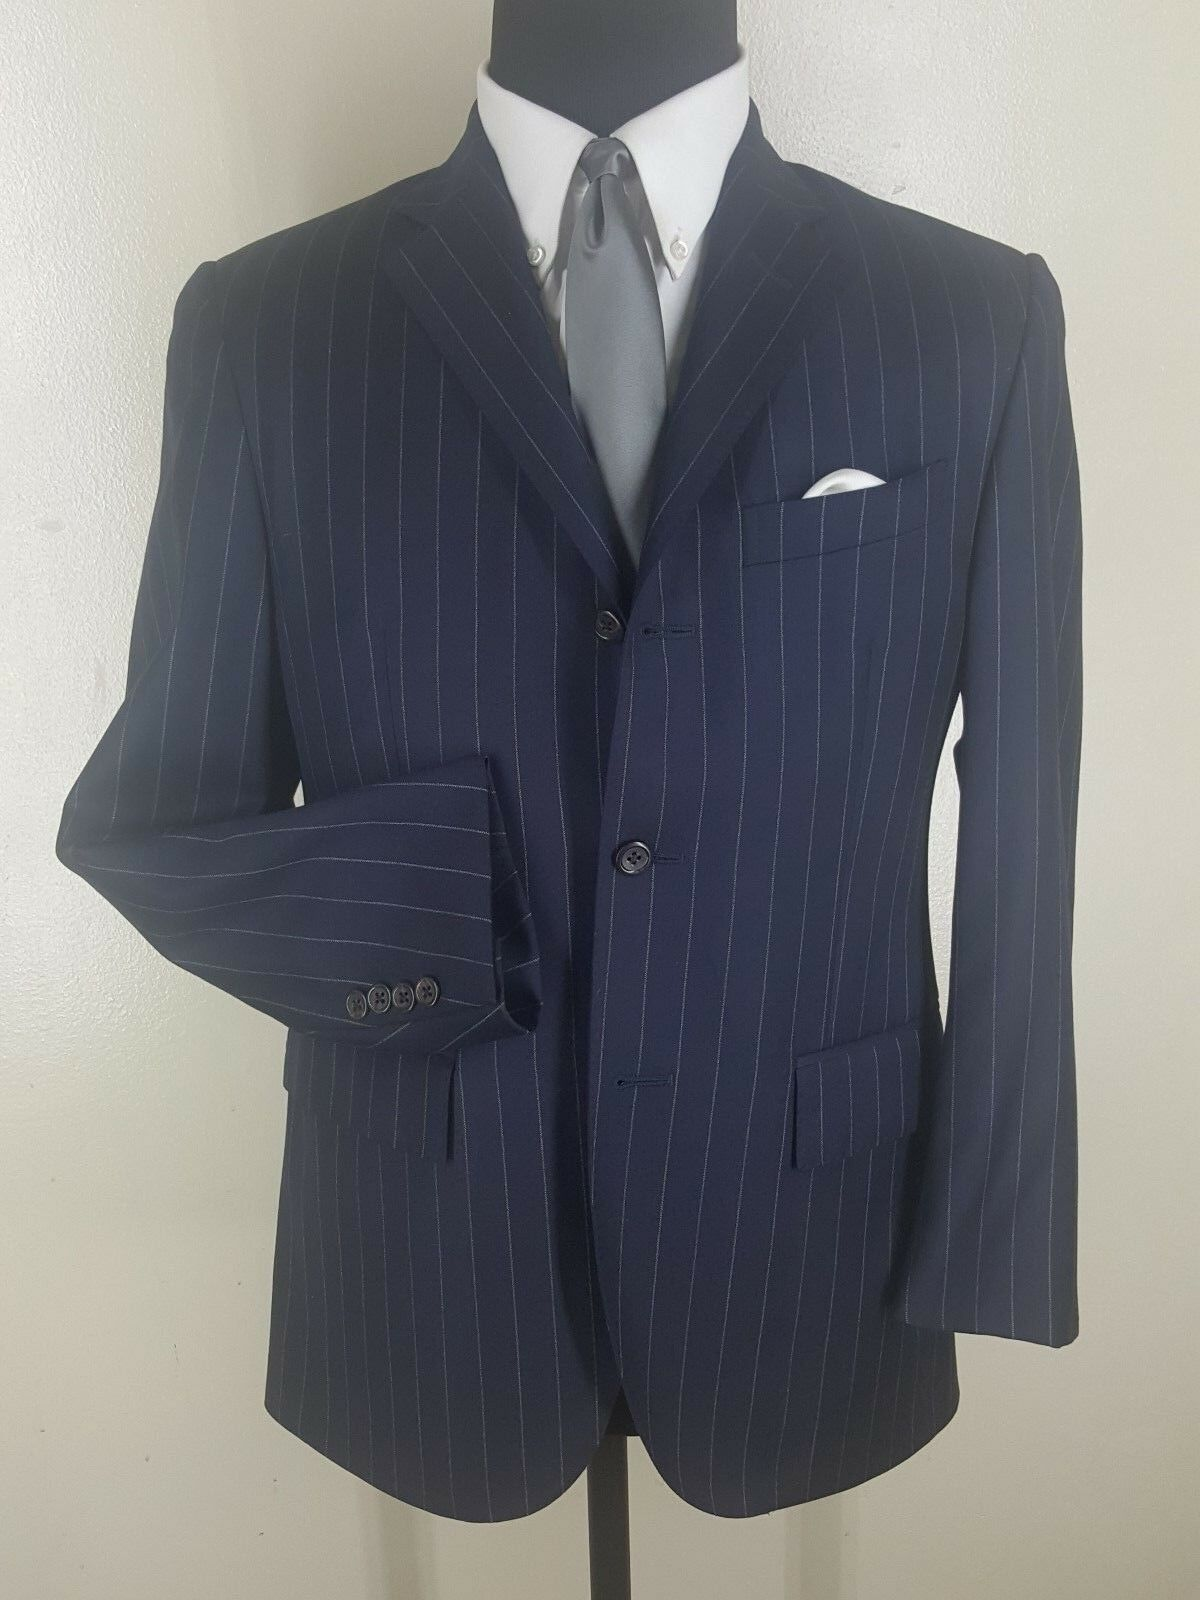 POLO RALPH LAUREN Made In  100% Wool Suit 3 Btn  Pleated  Pants  38 Short